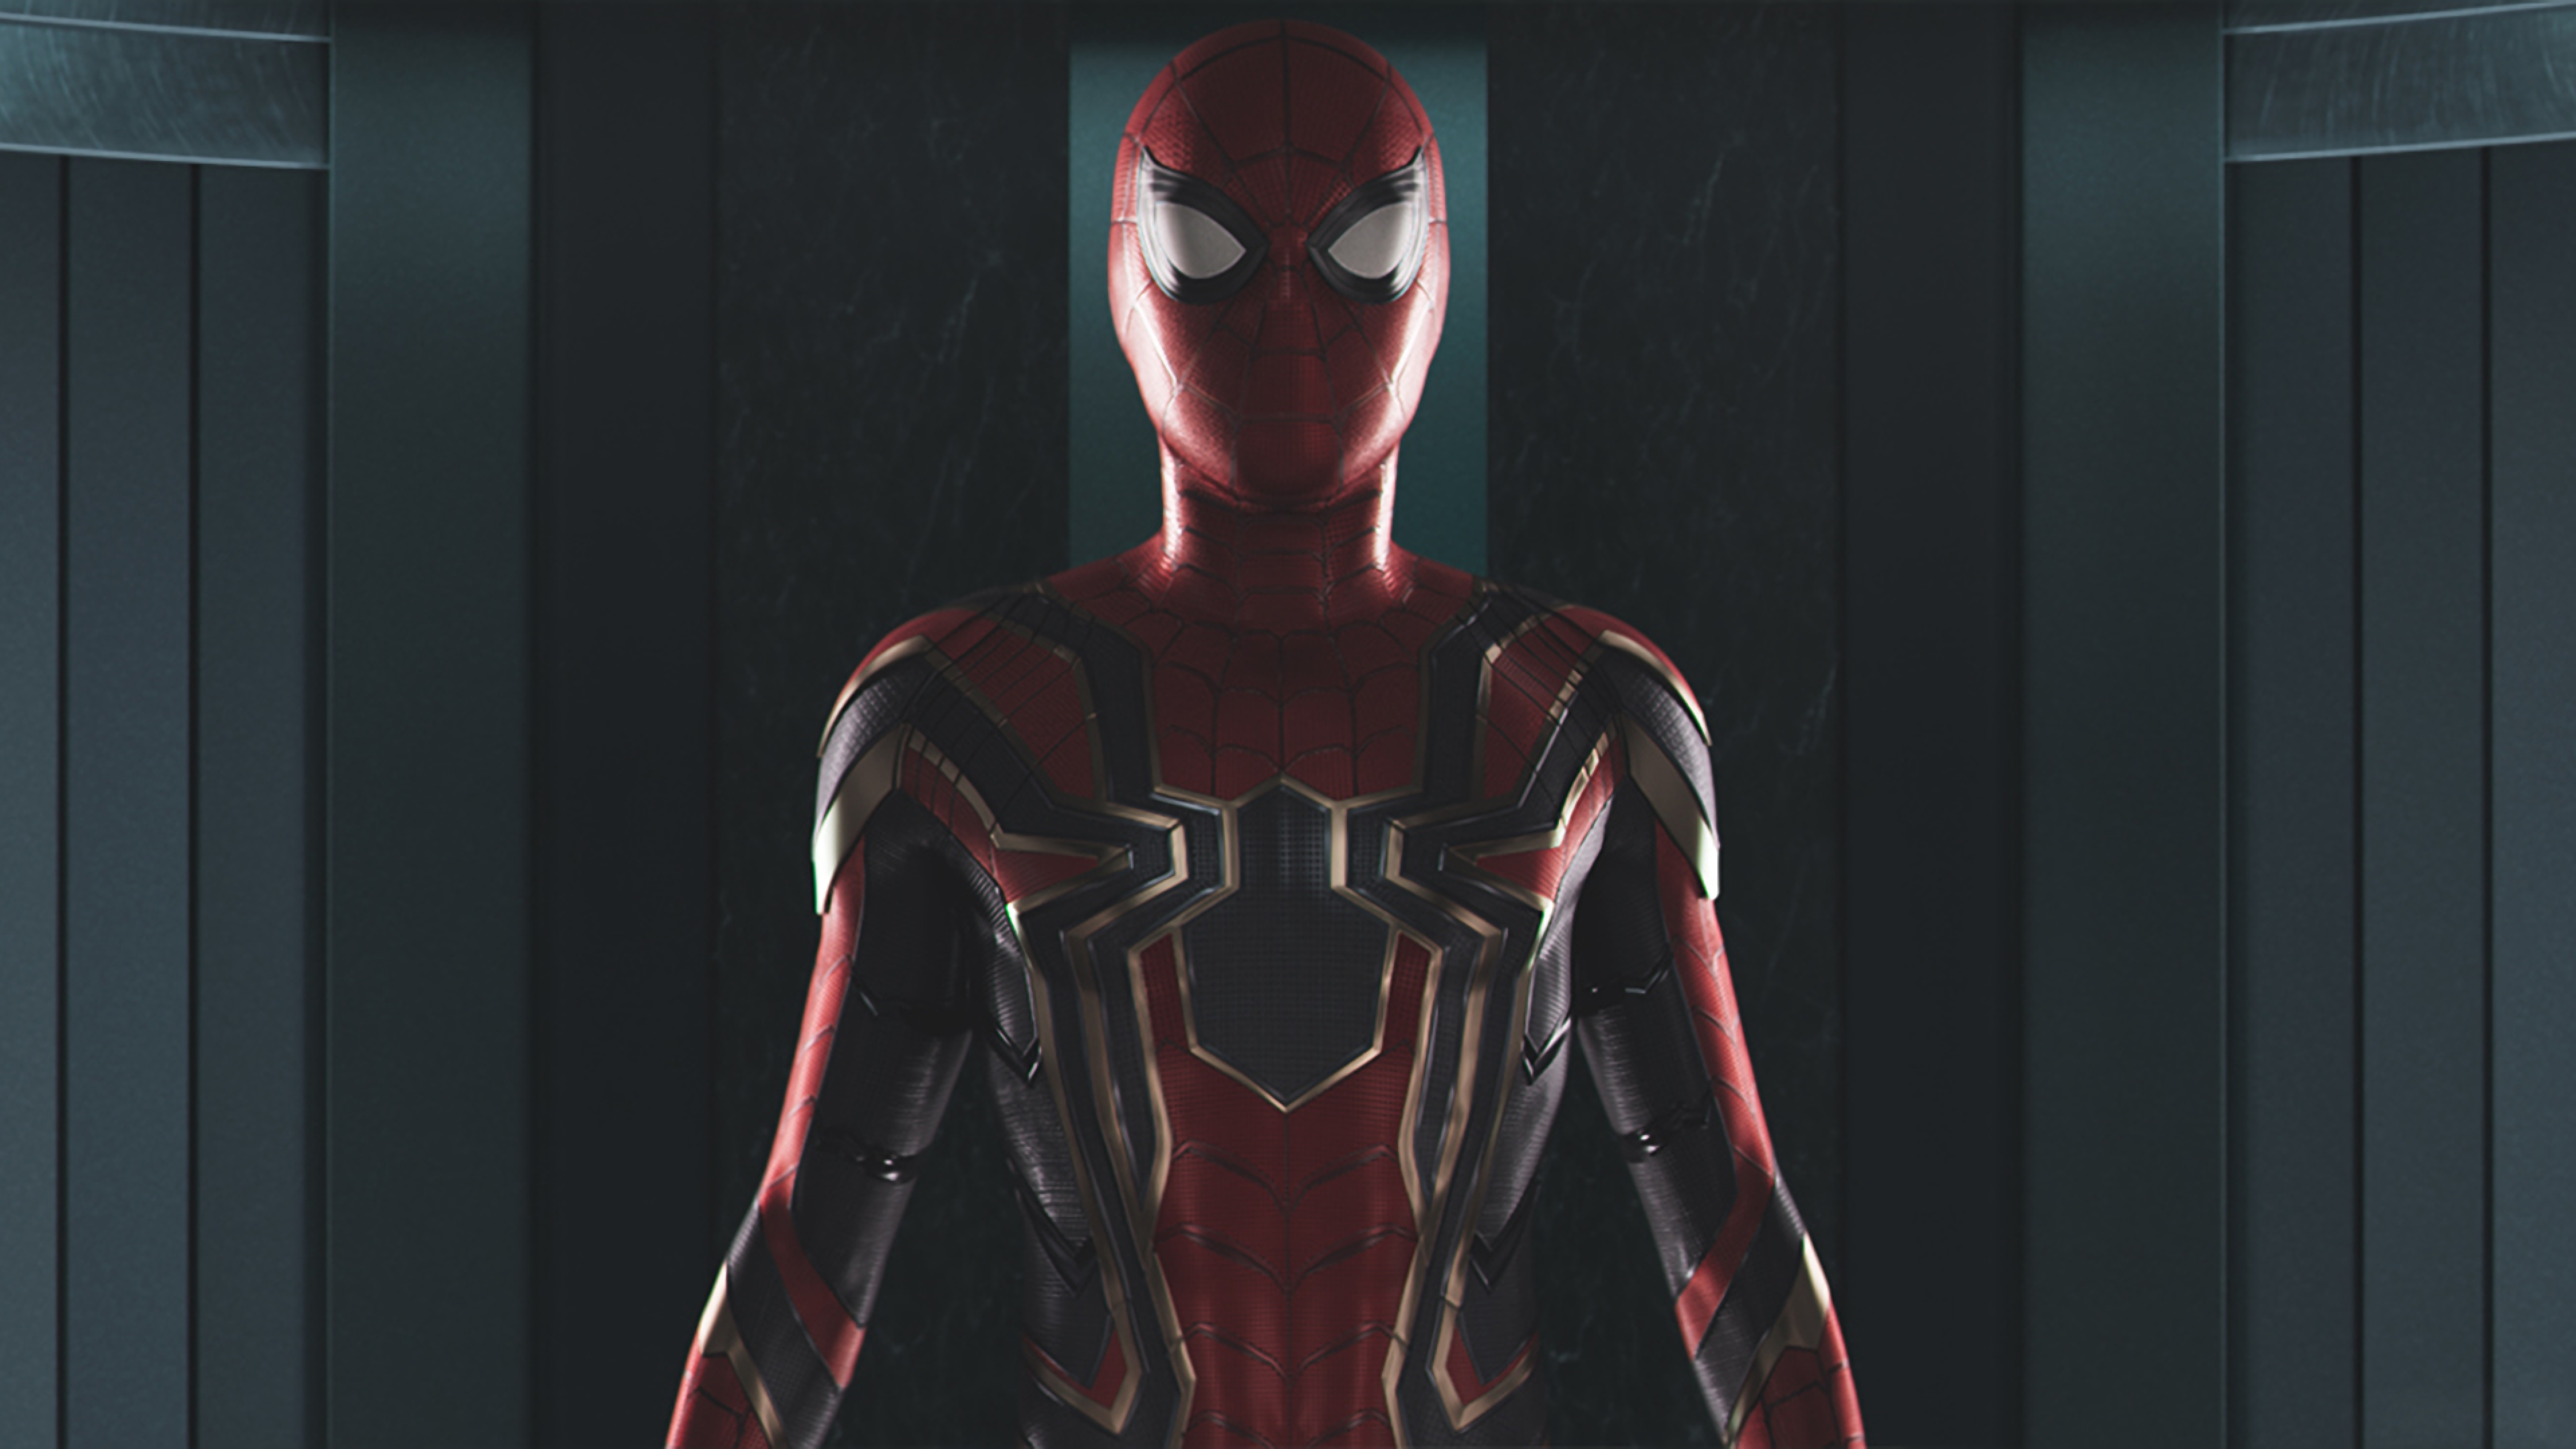 7680x4320 Spider Man New Costume For Homecoming And Avengers 8k